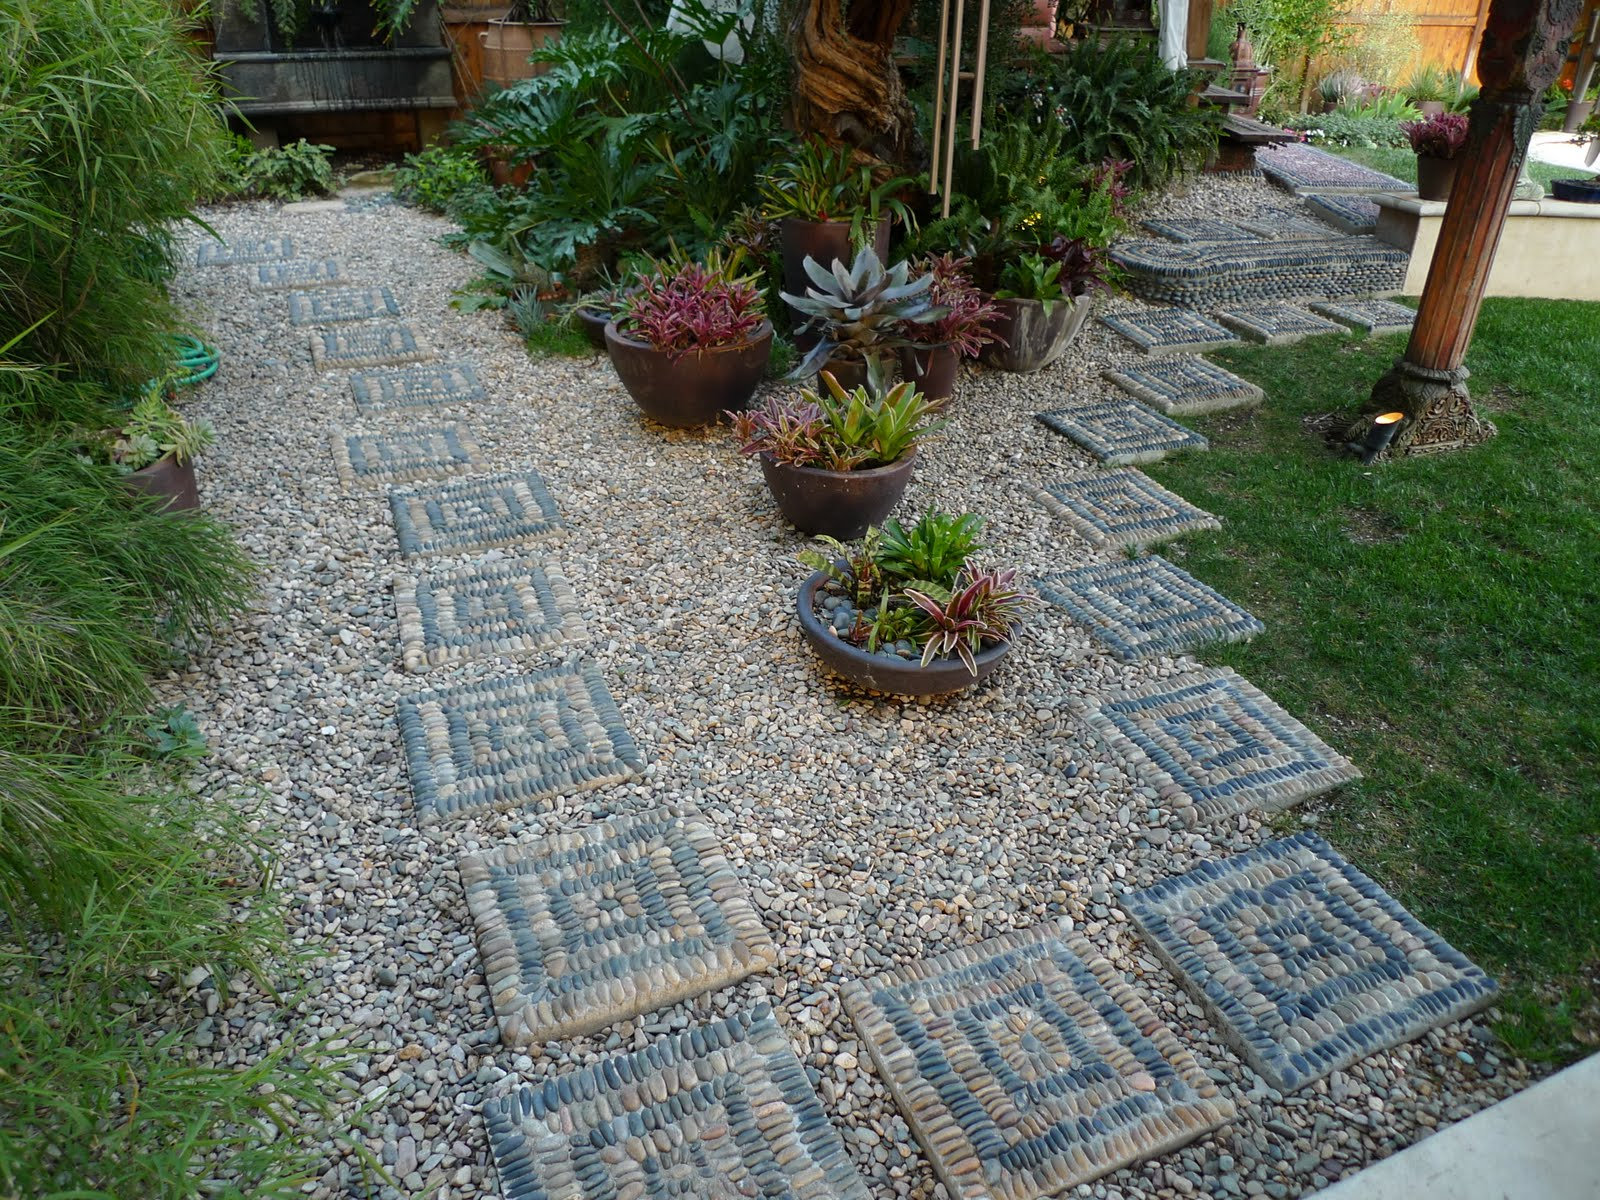 Jeffrey bale 39 s world of gardens building a pebble mosaic for Garden designs using pebbles